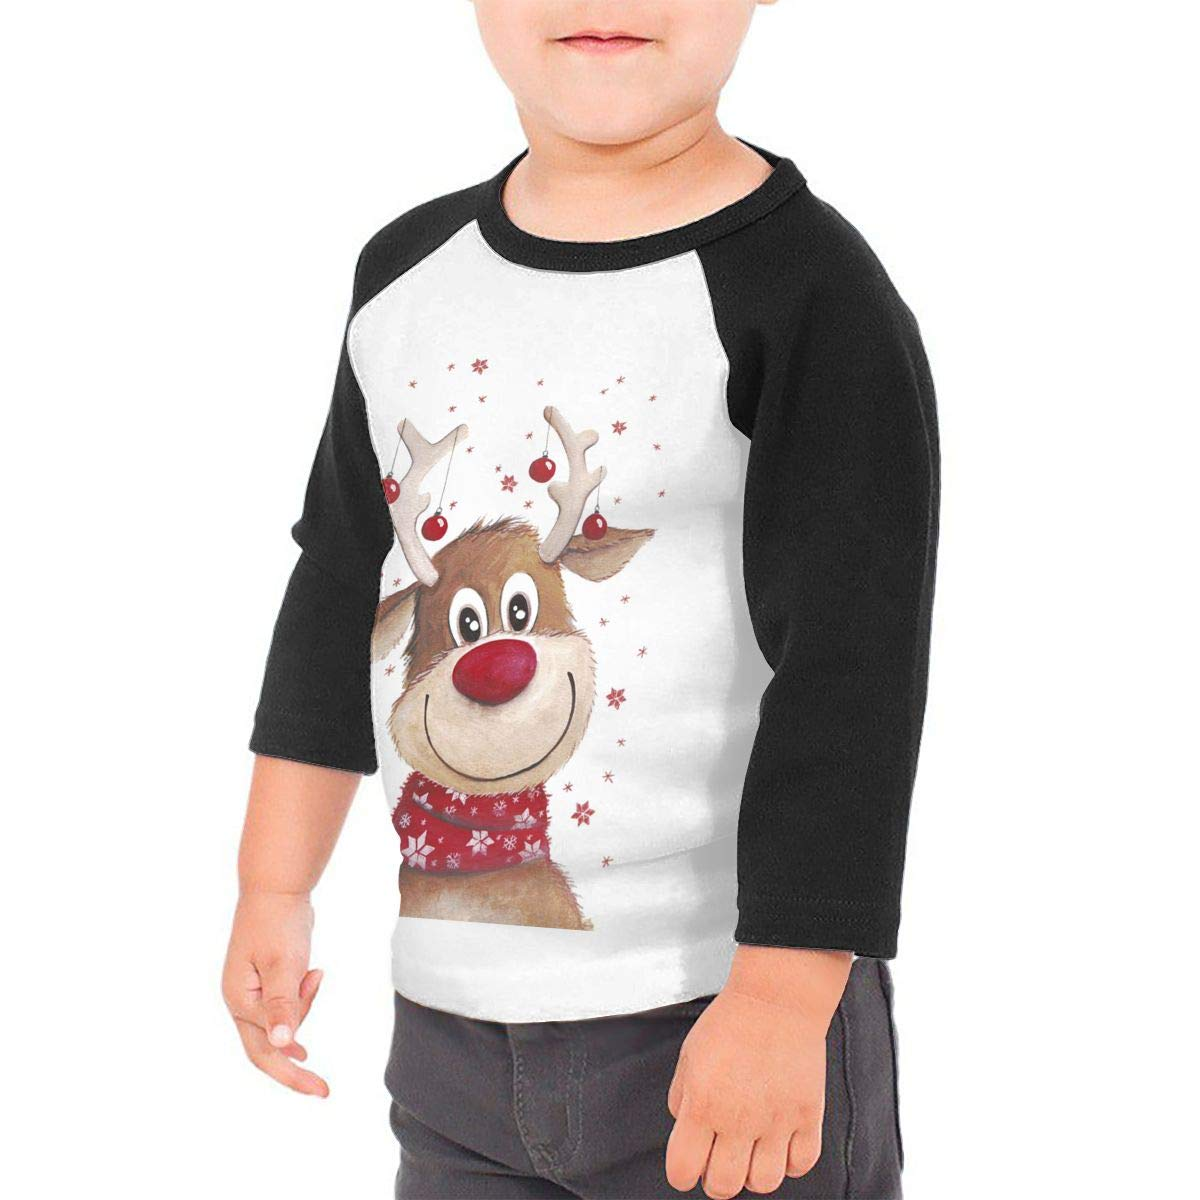 Yimo Rudolph Unisex Toddler Baseball Jersey Contrast 3//4 Sleeves Tee